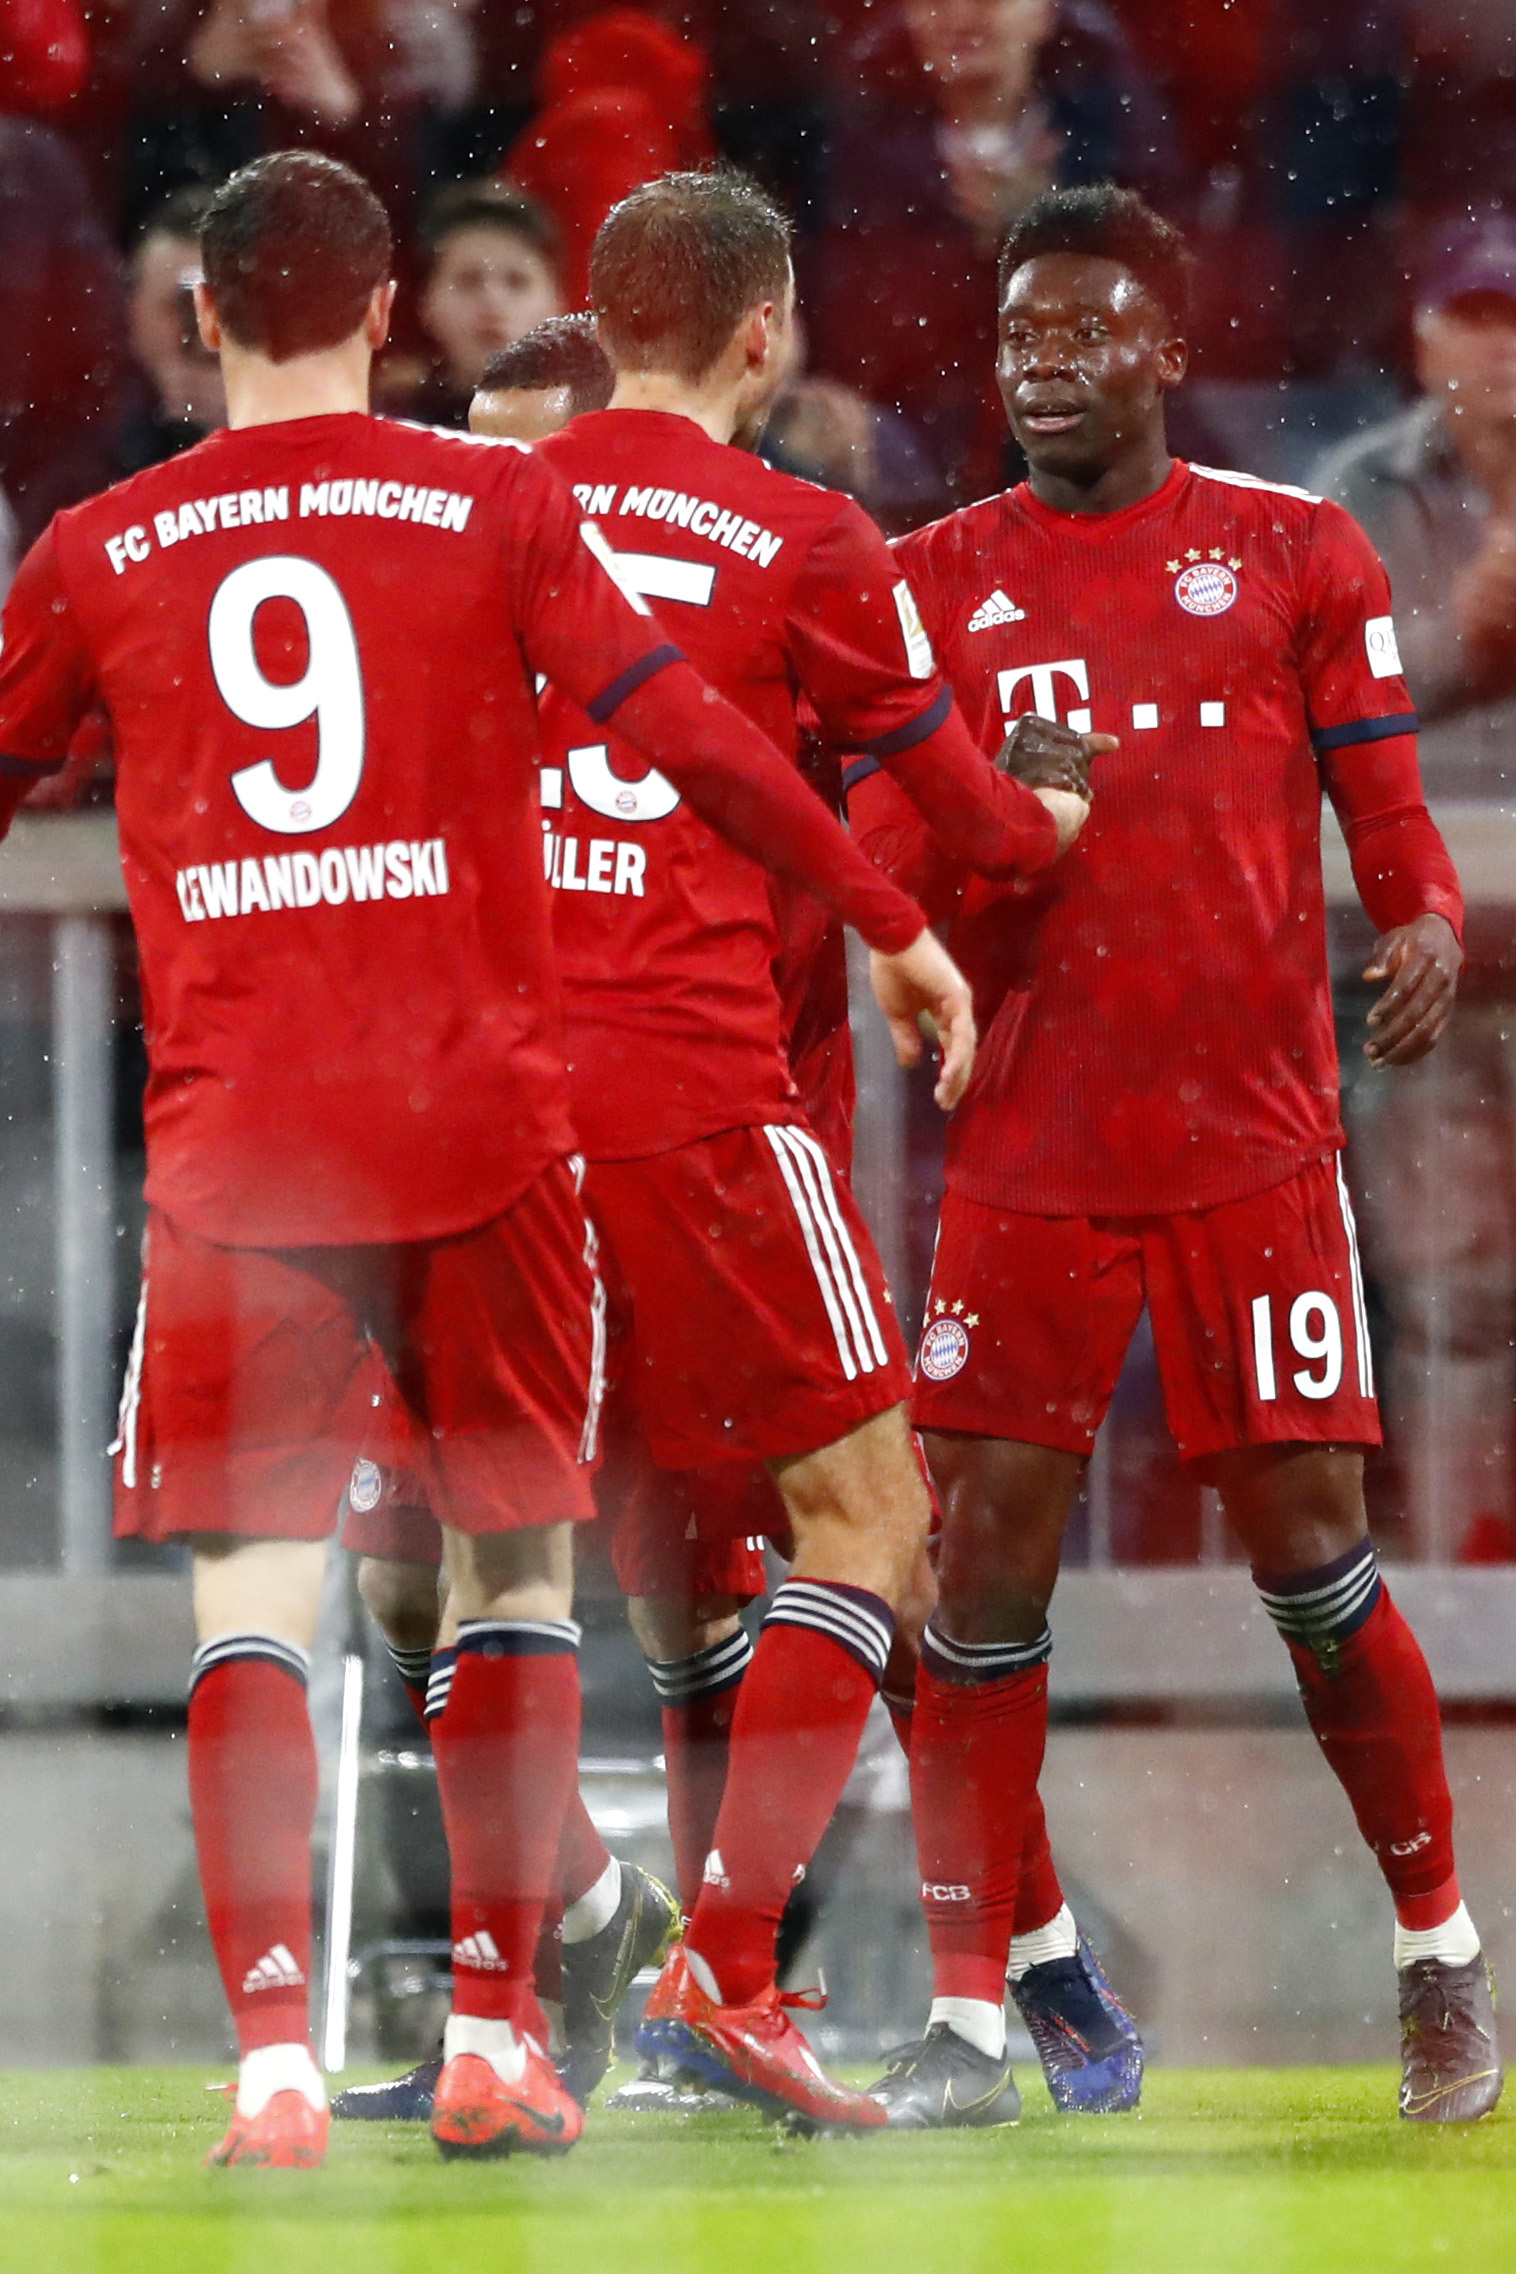 Canadian teen Alphonso Davies scores his 1st goal for Bayern